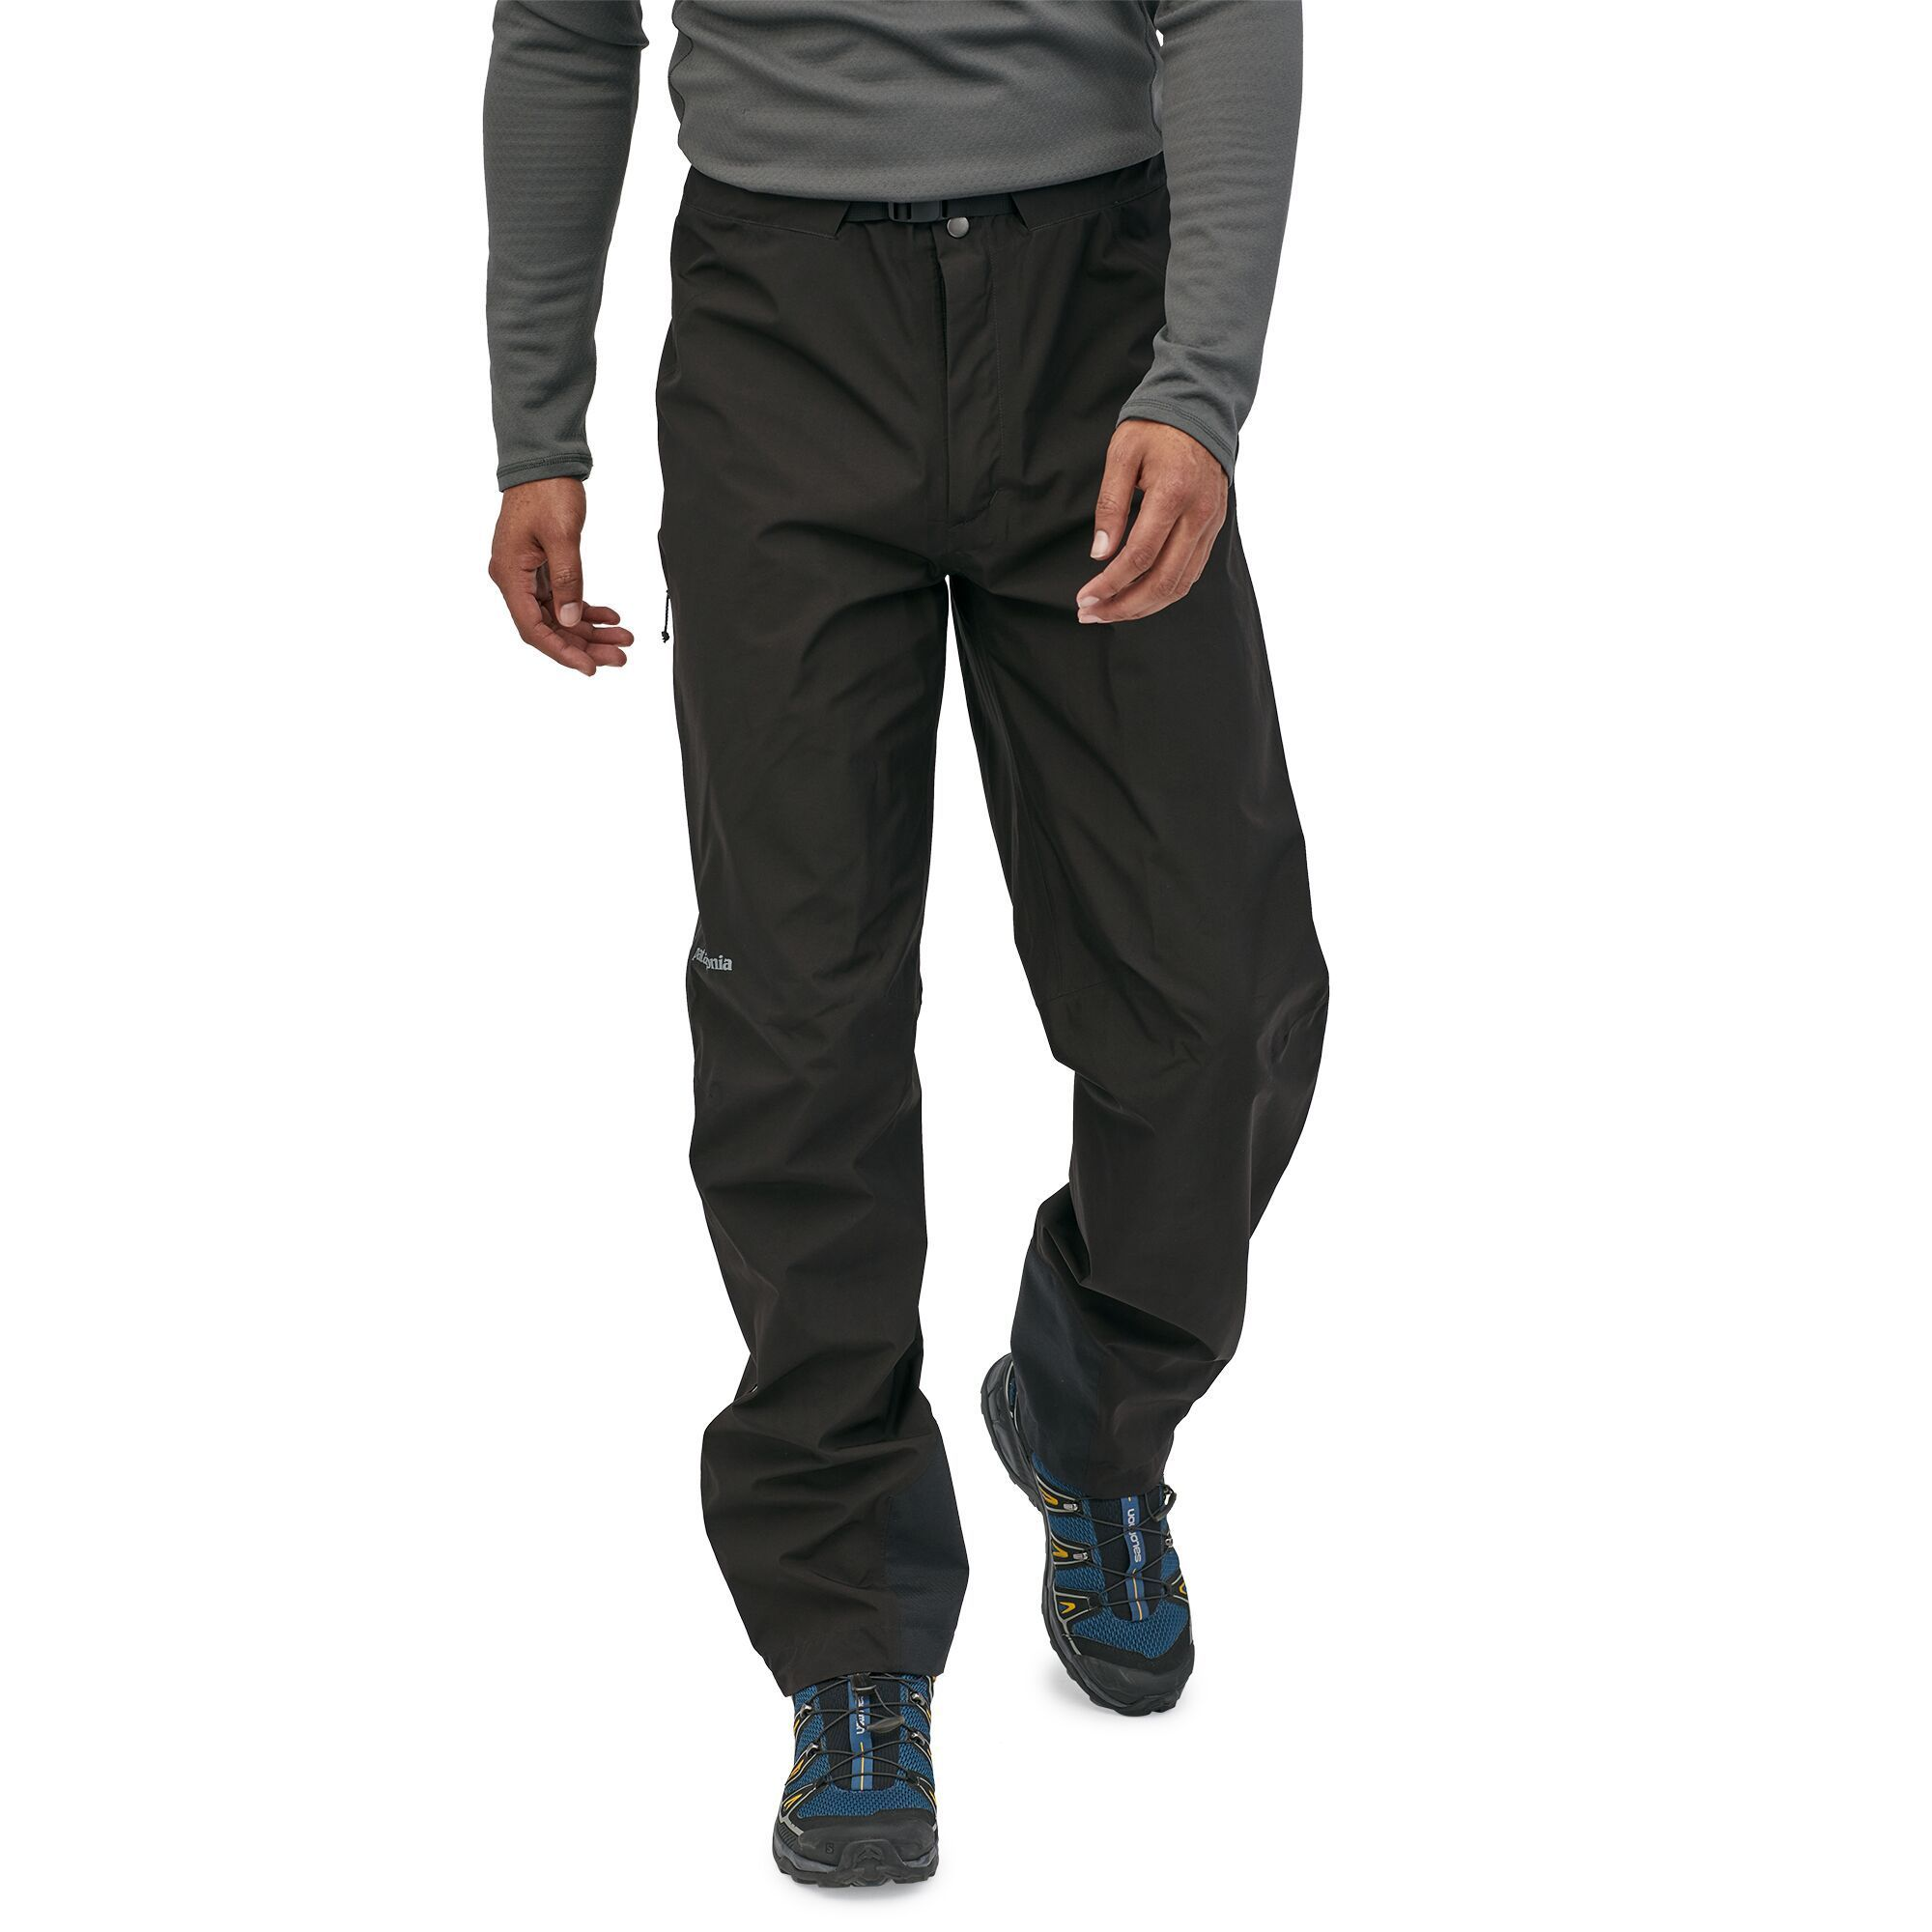 Patagonia - M's Calcite Pants - Gore-Tex - Recycled Polyester - Weekendbee - sustainable sportswear